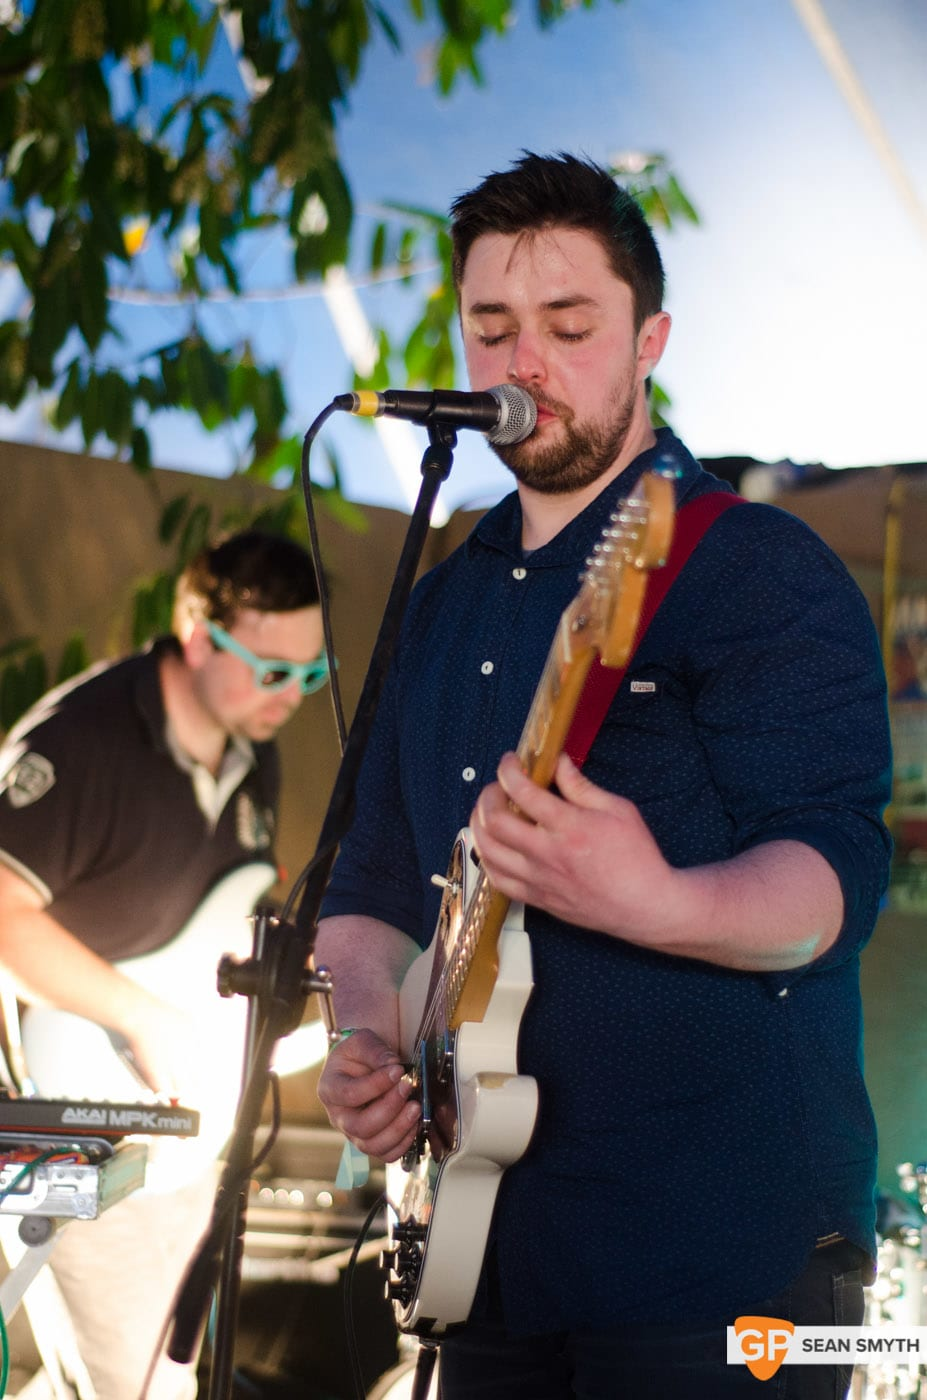 almost-ghosts-sunday-at-vantastival-by-sean-smyth-1-5-14-2-of-49